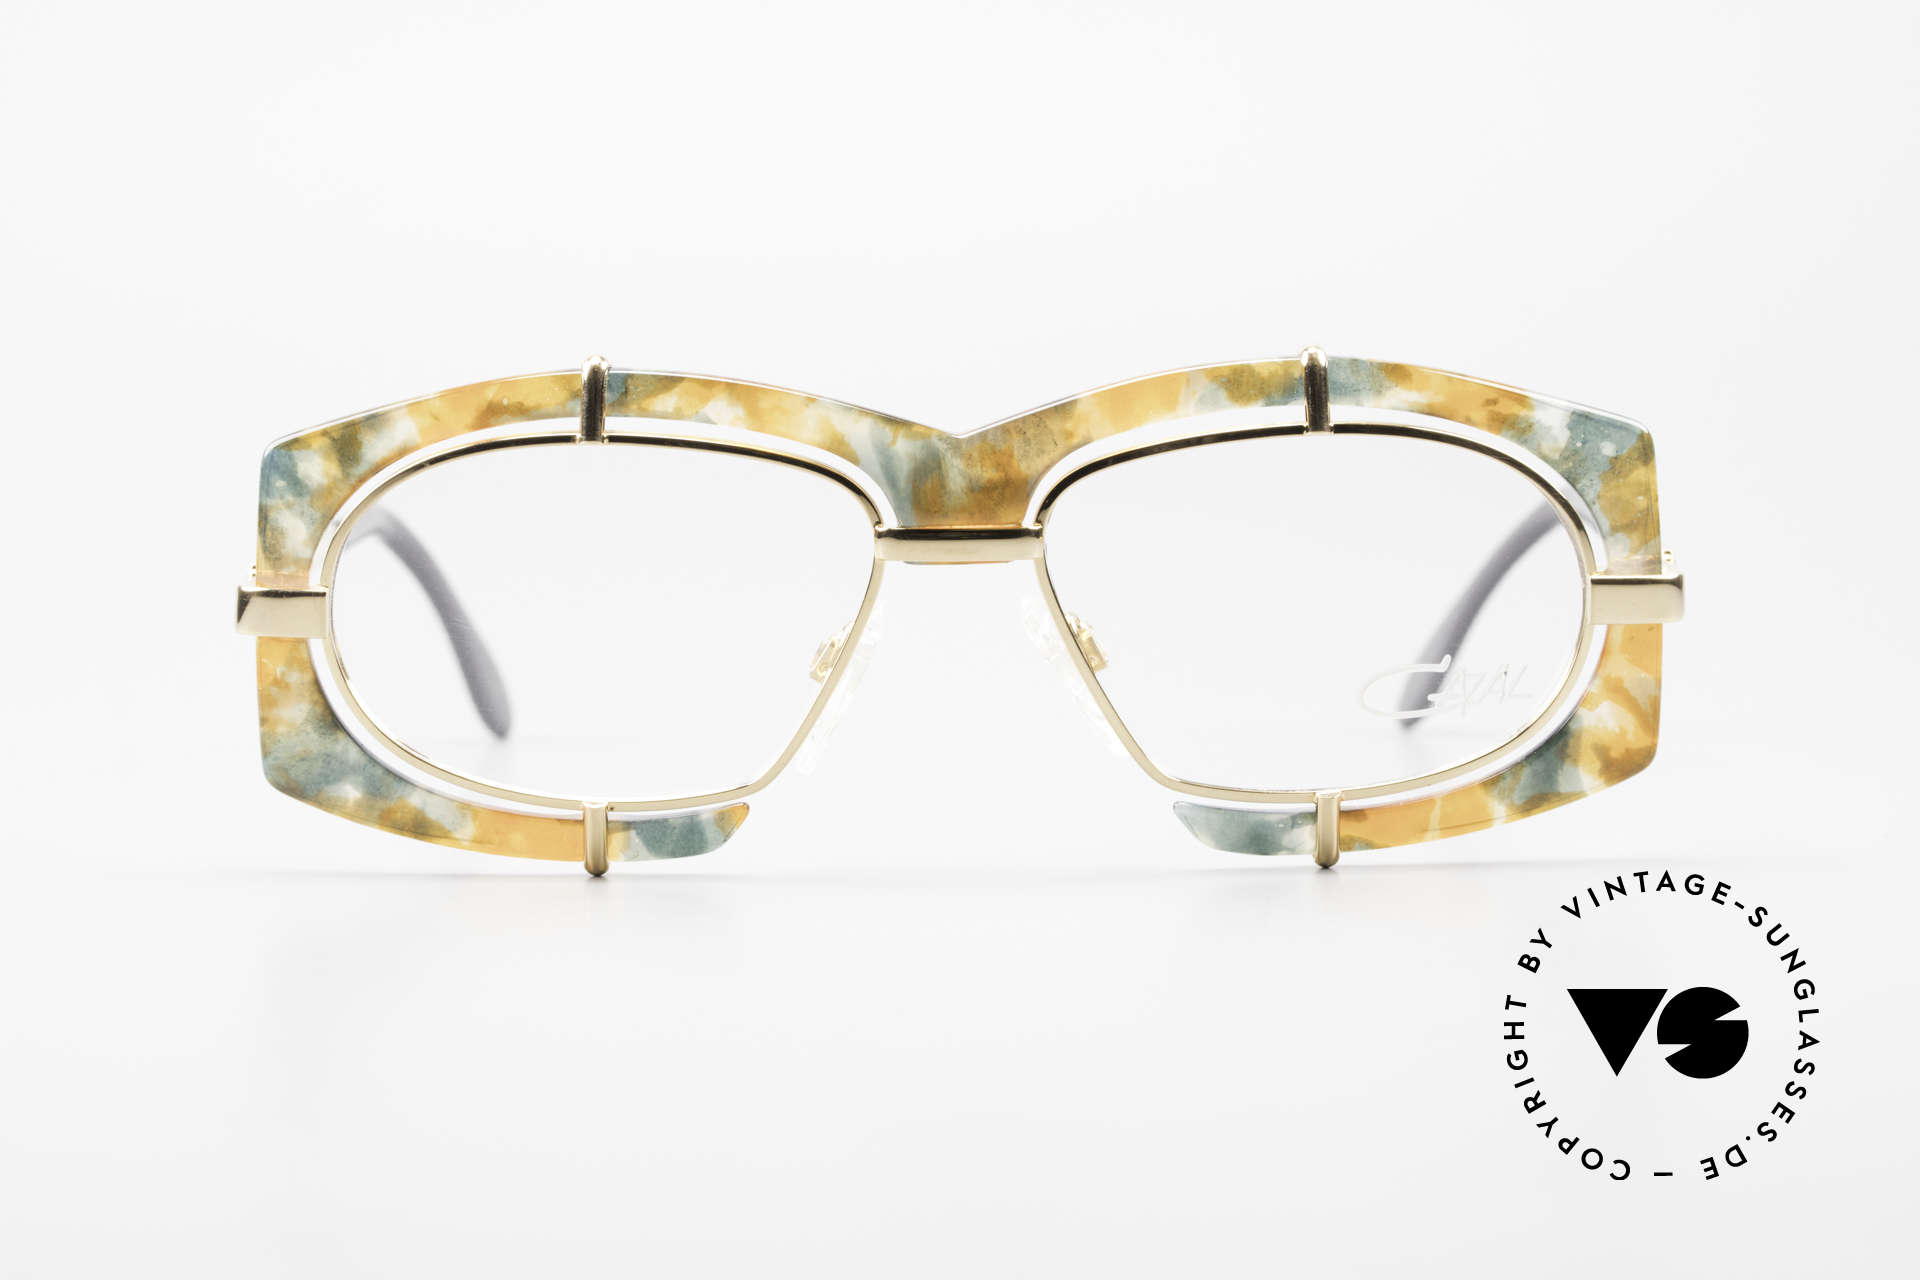 Cazal 872 Extraordinary 90's Eyeglasses, extravagant lens mounting & spunky frame coloring, Made for Men and Women